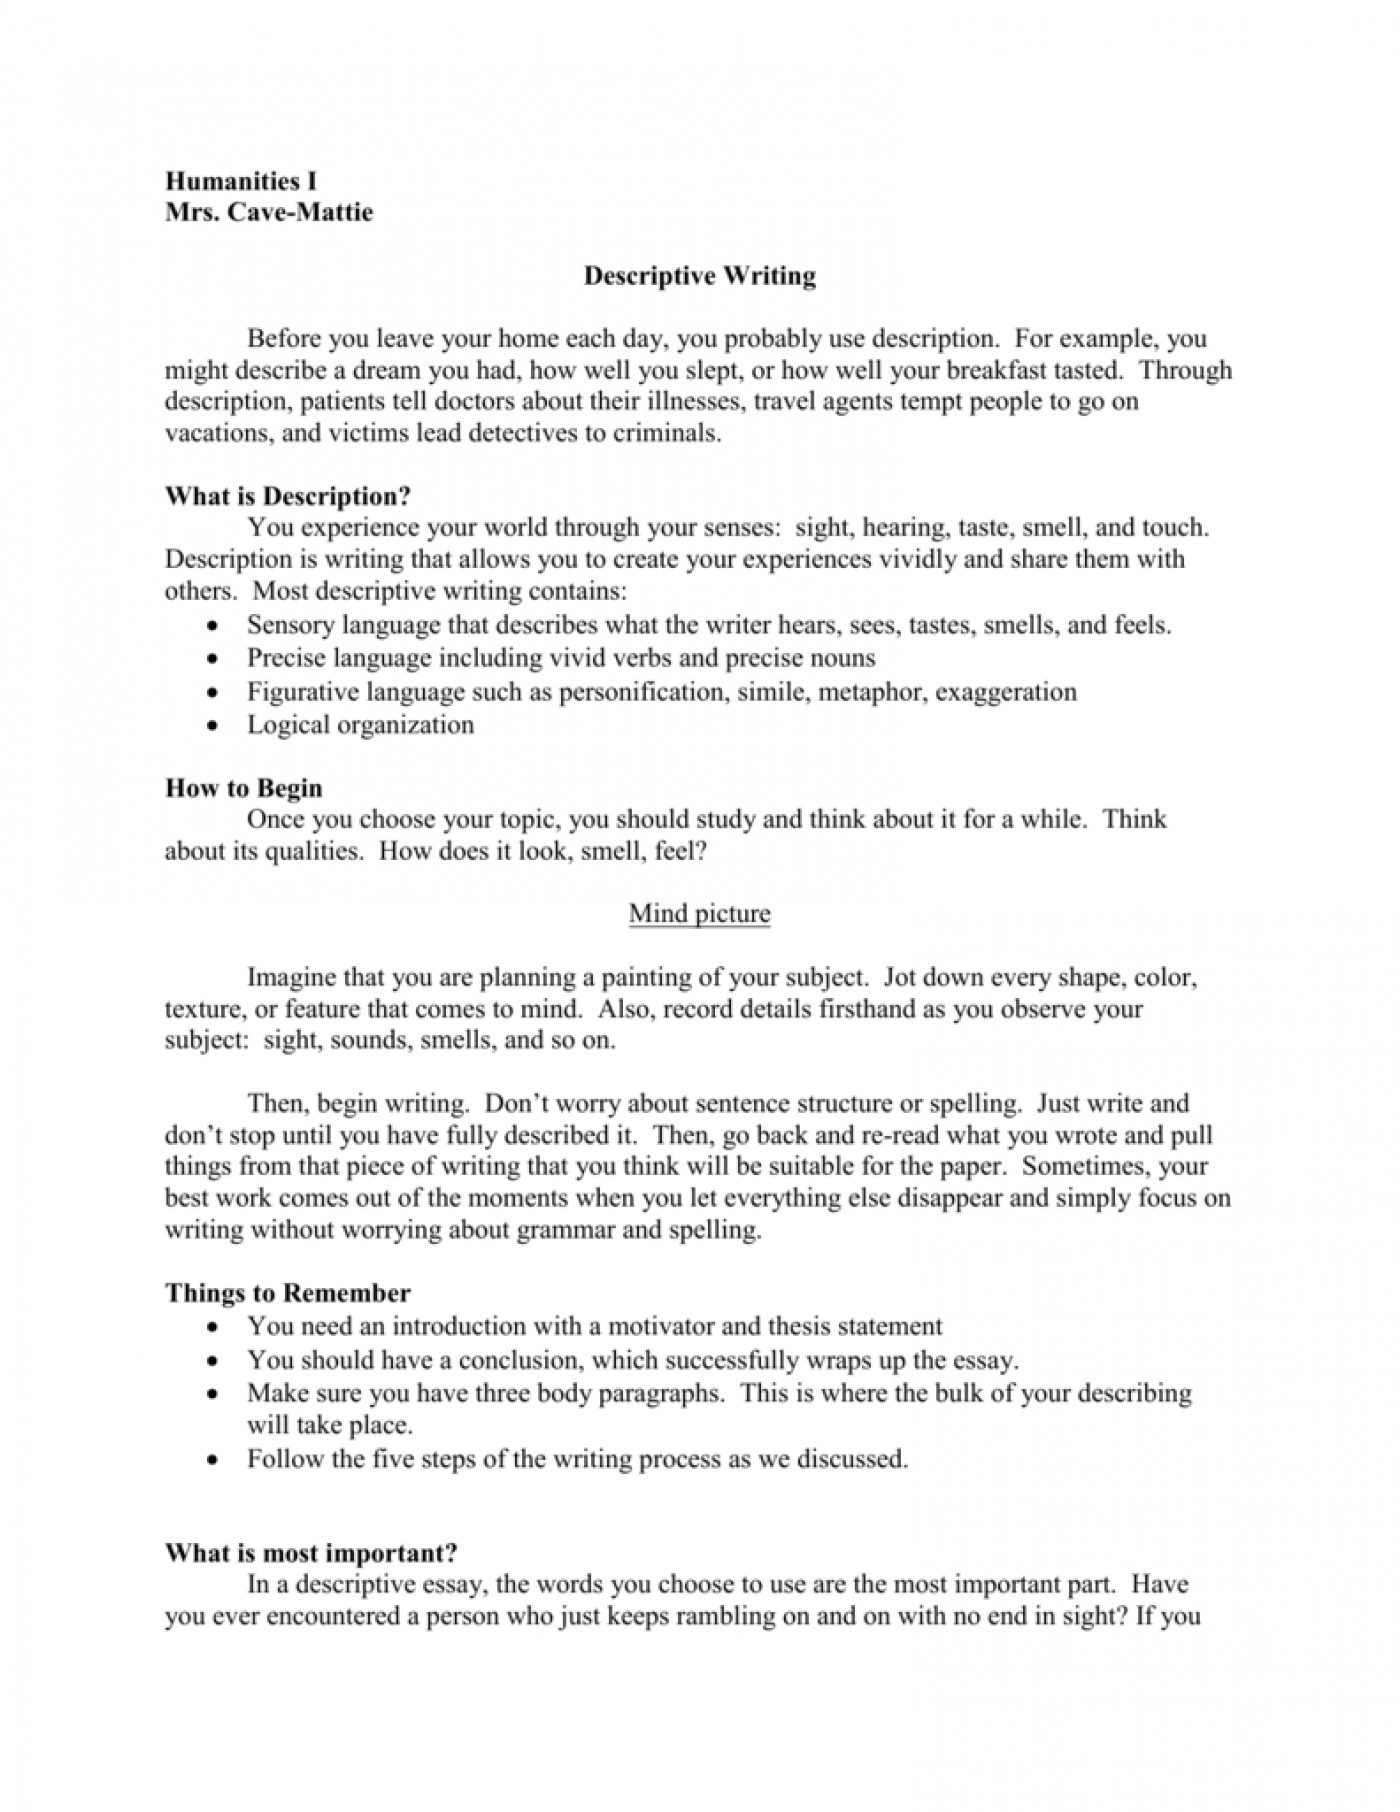 flavios home descriptive essay